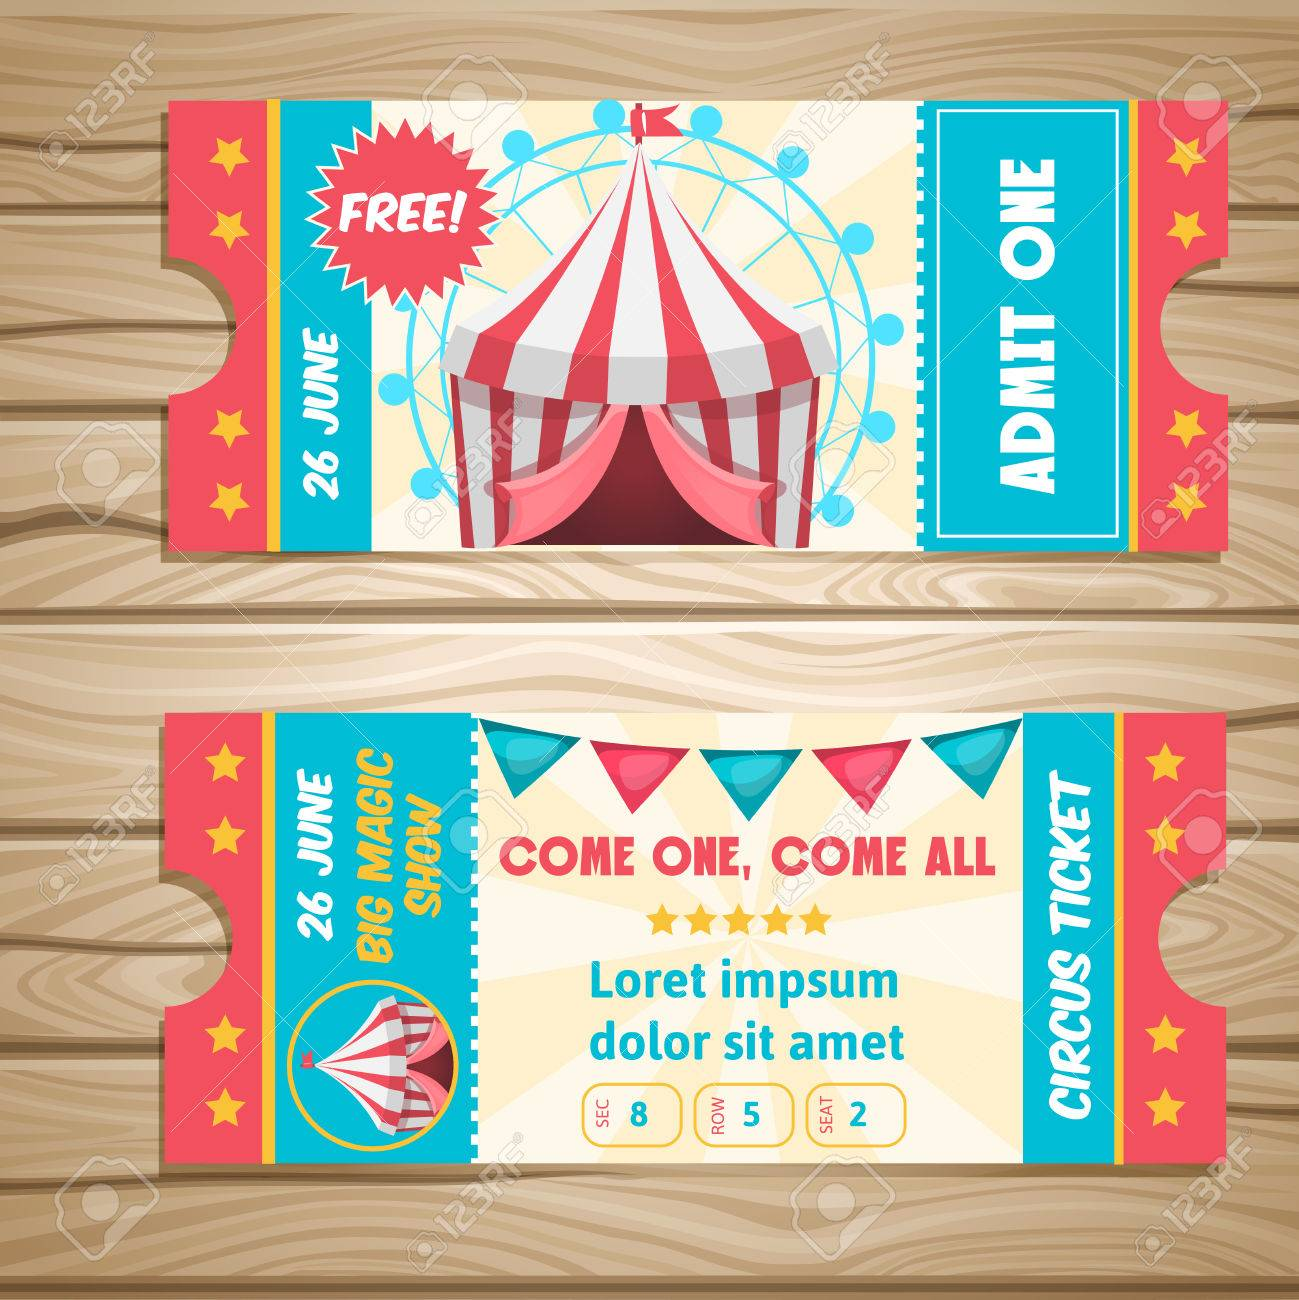 Event tickets for magic show in cartoon style with circus tent flags and editable text illustration  sc 1 st  123RF.com & Event Tickets For Magic Show In Cartoon Style With Circus Tent ...